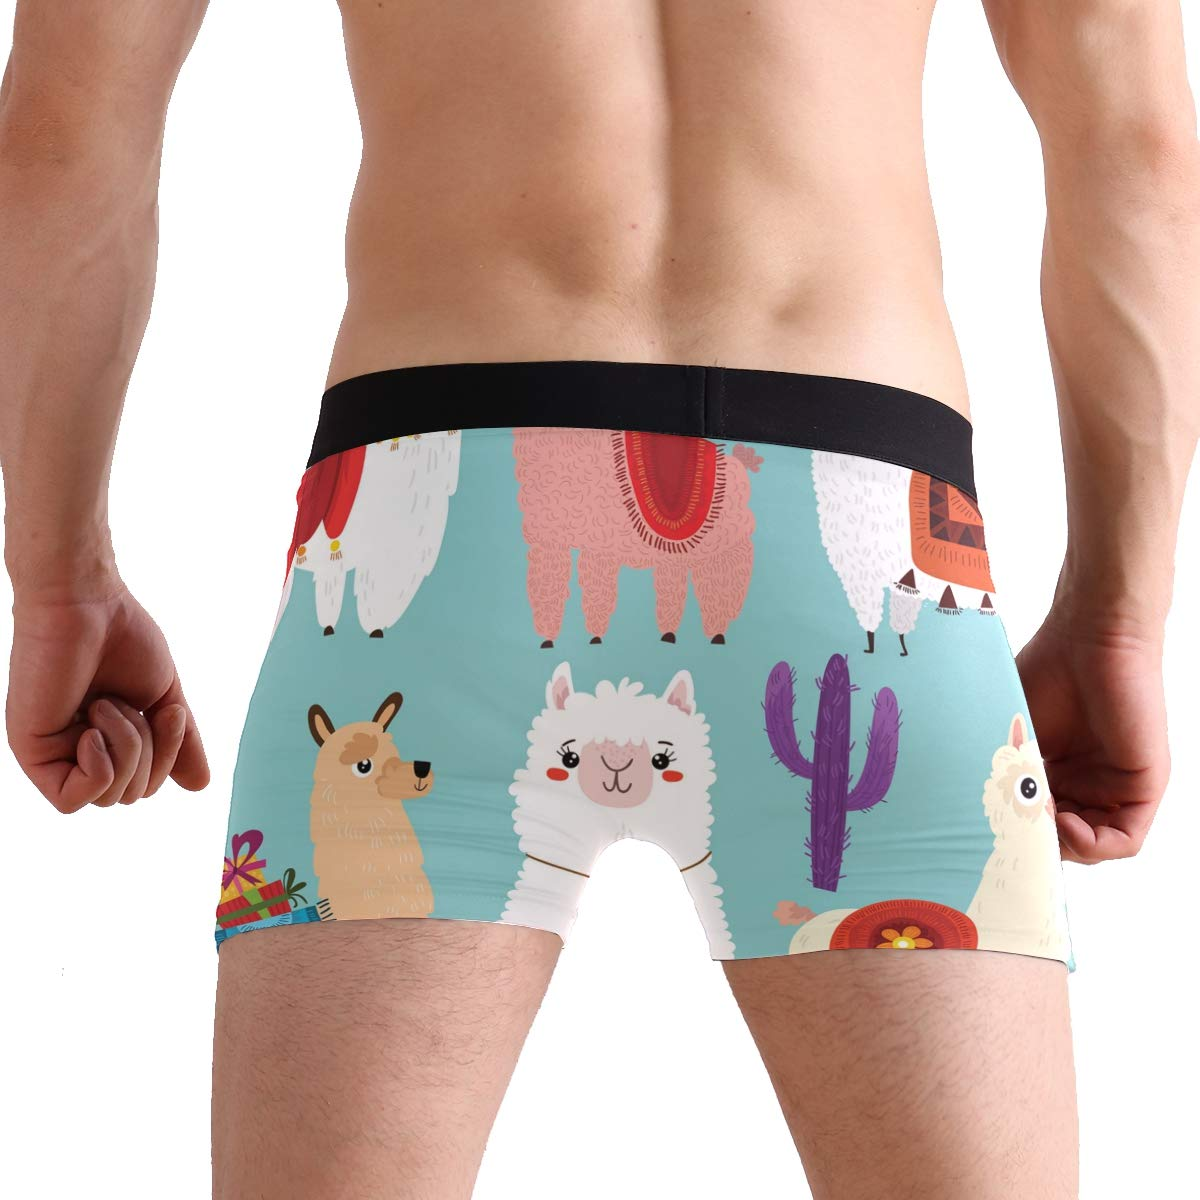 SUABO Mens 2-Pack Boxer Briefs Polyester Underwear Trunk Underwear with Colorful Alpaca Design